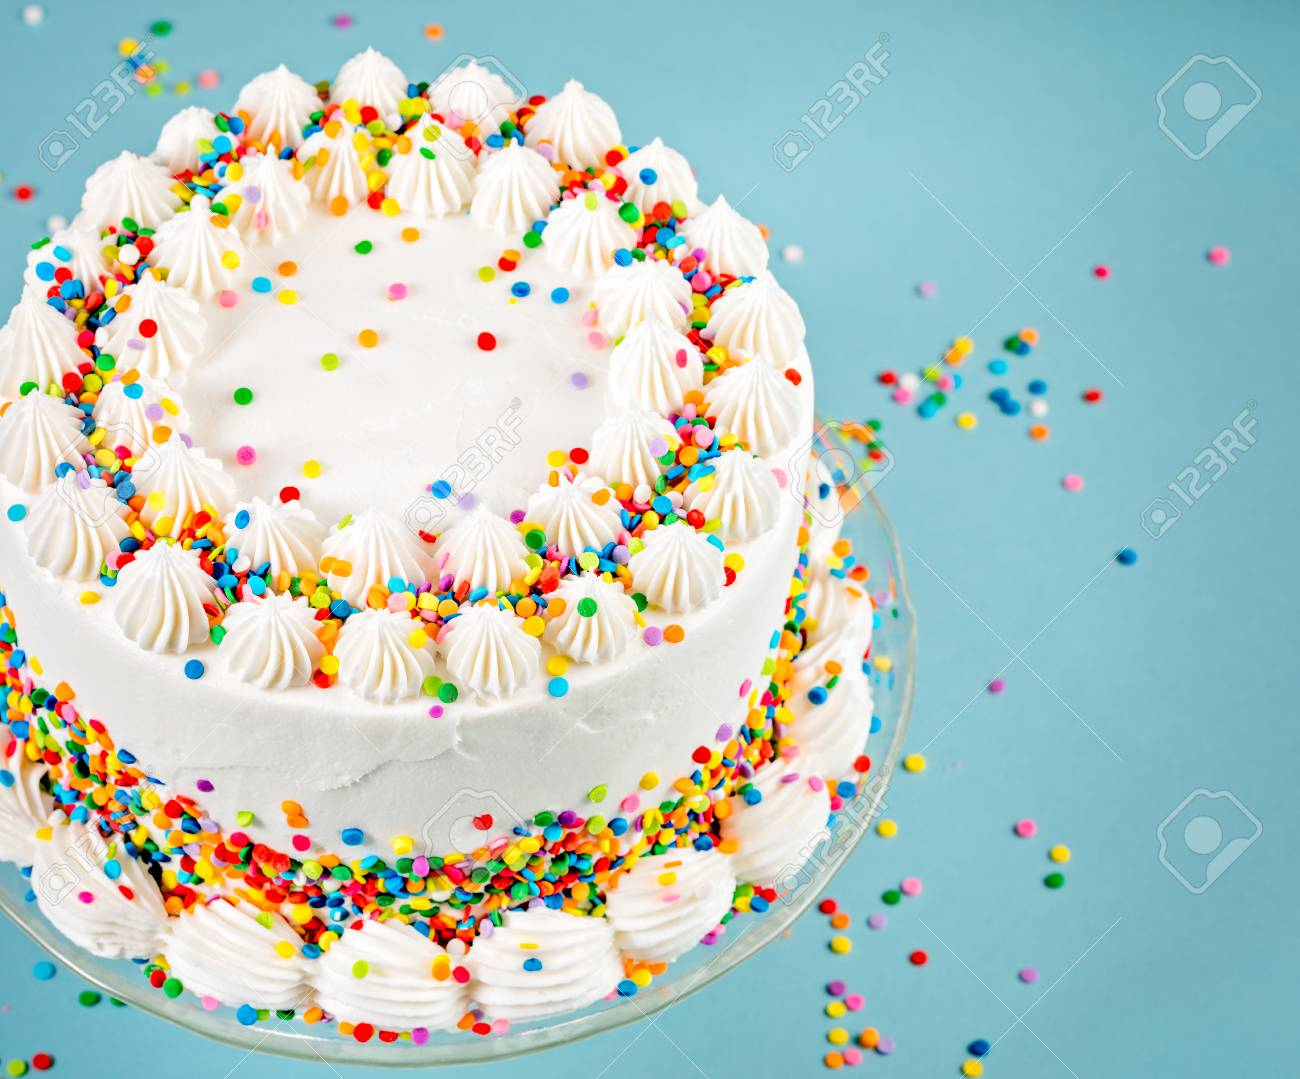 Incredible White Birthday Cake With Colorful Sprinkles Over A Blue Background Funny Birthday Cards Online Aeocydamsfinfo